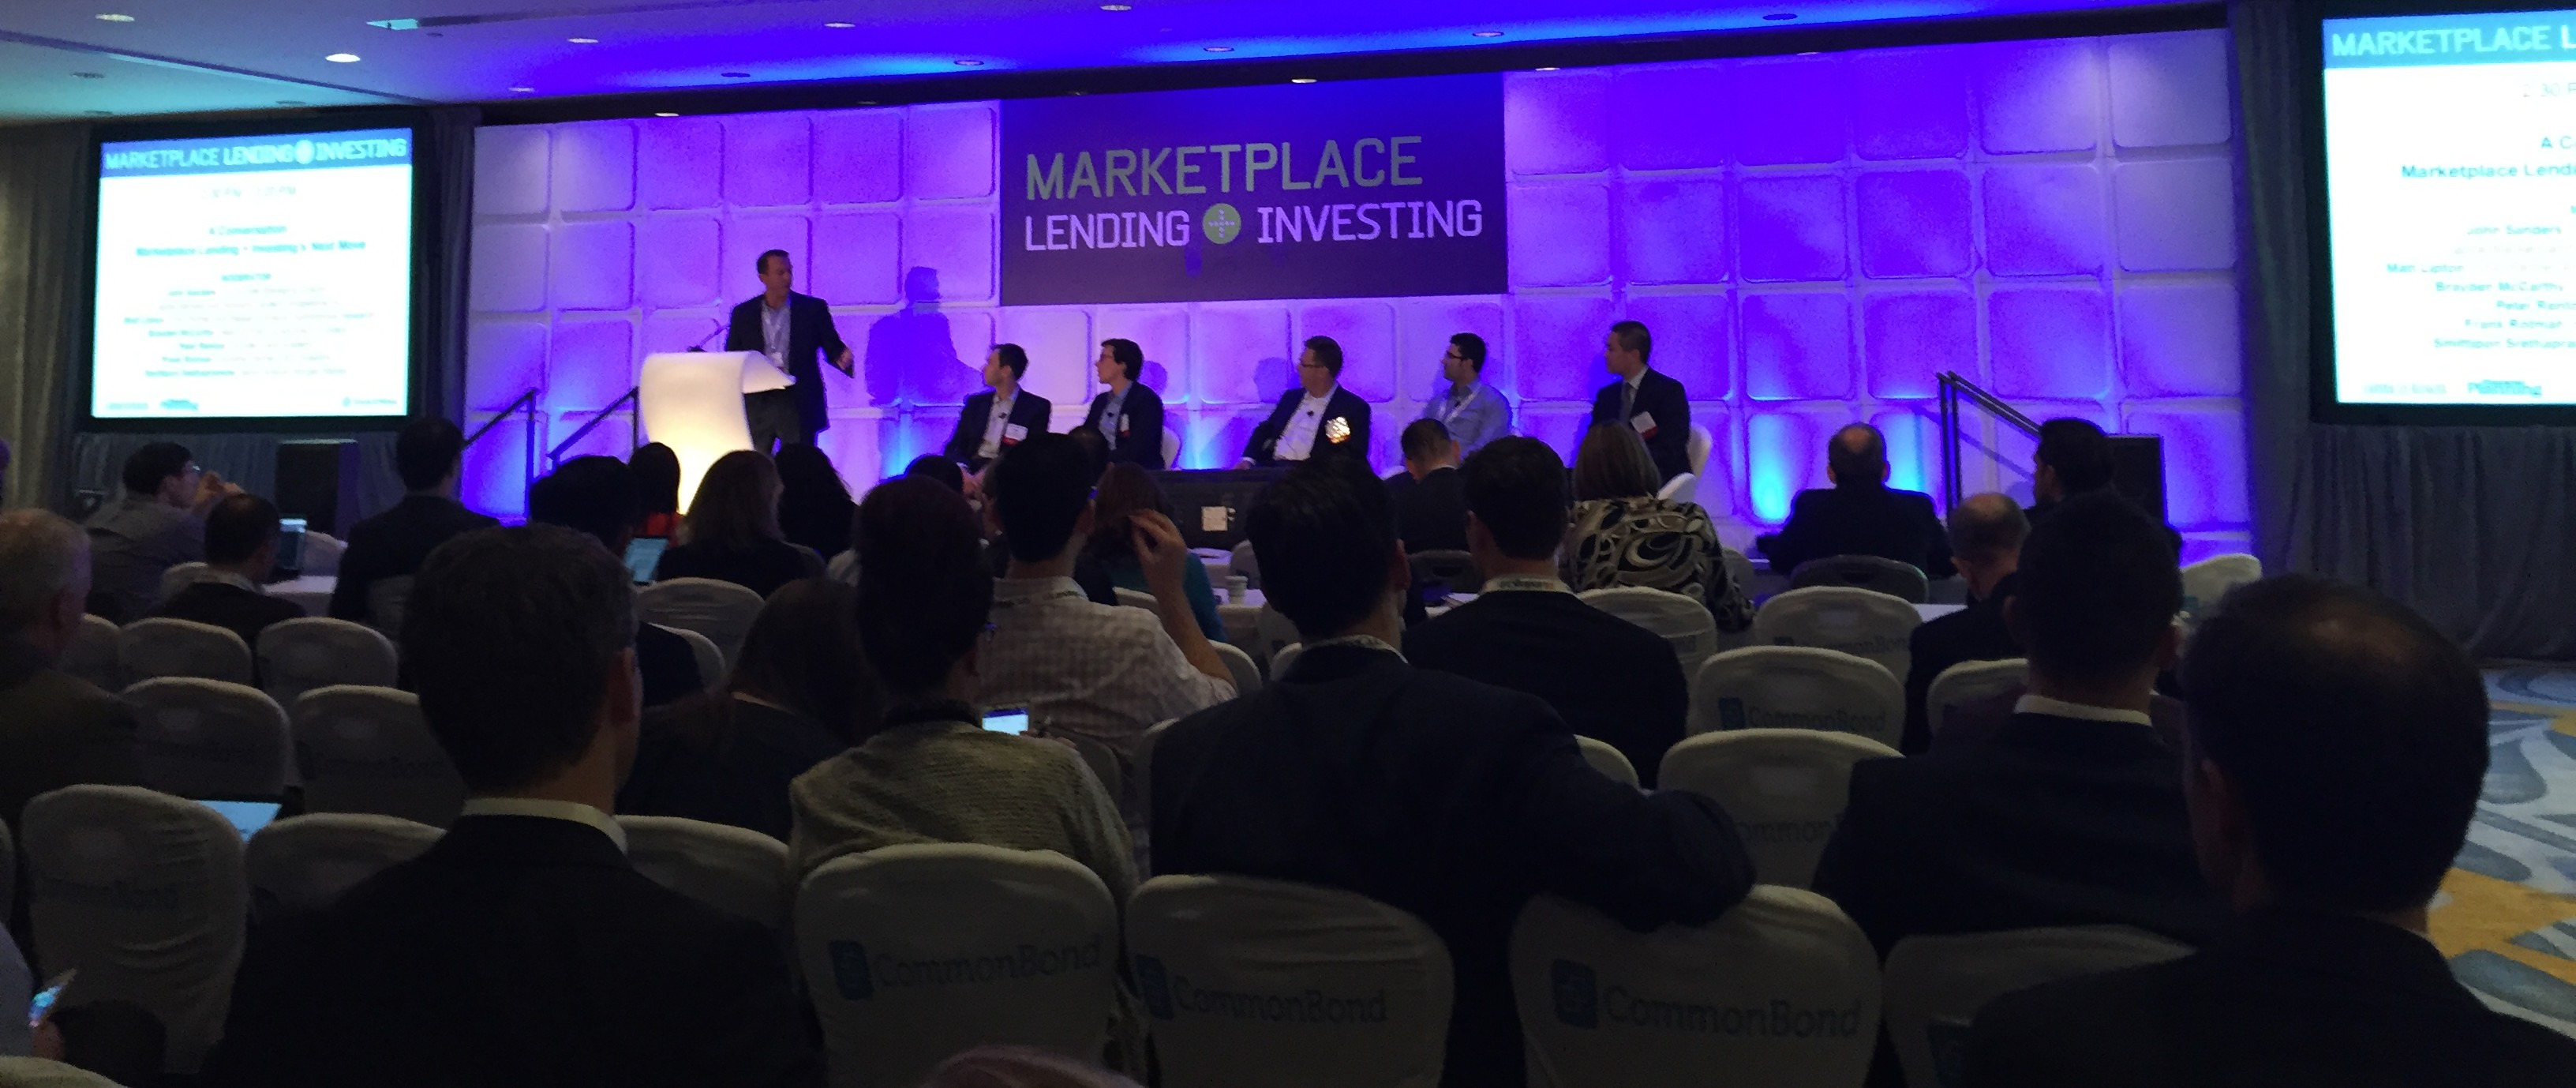 marketplace lending and investing source media new york